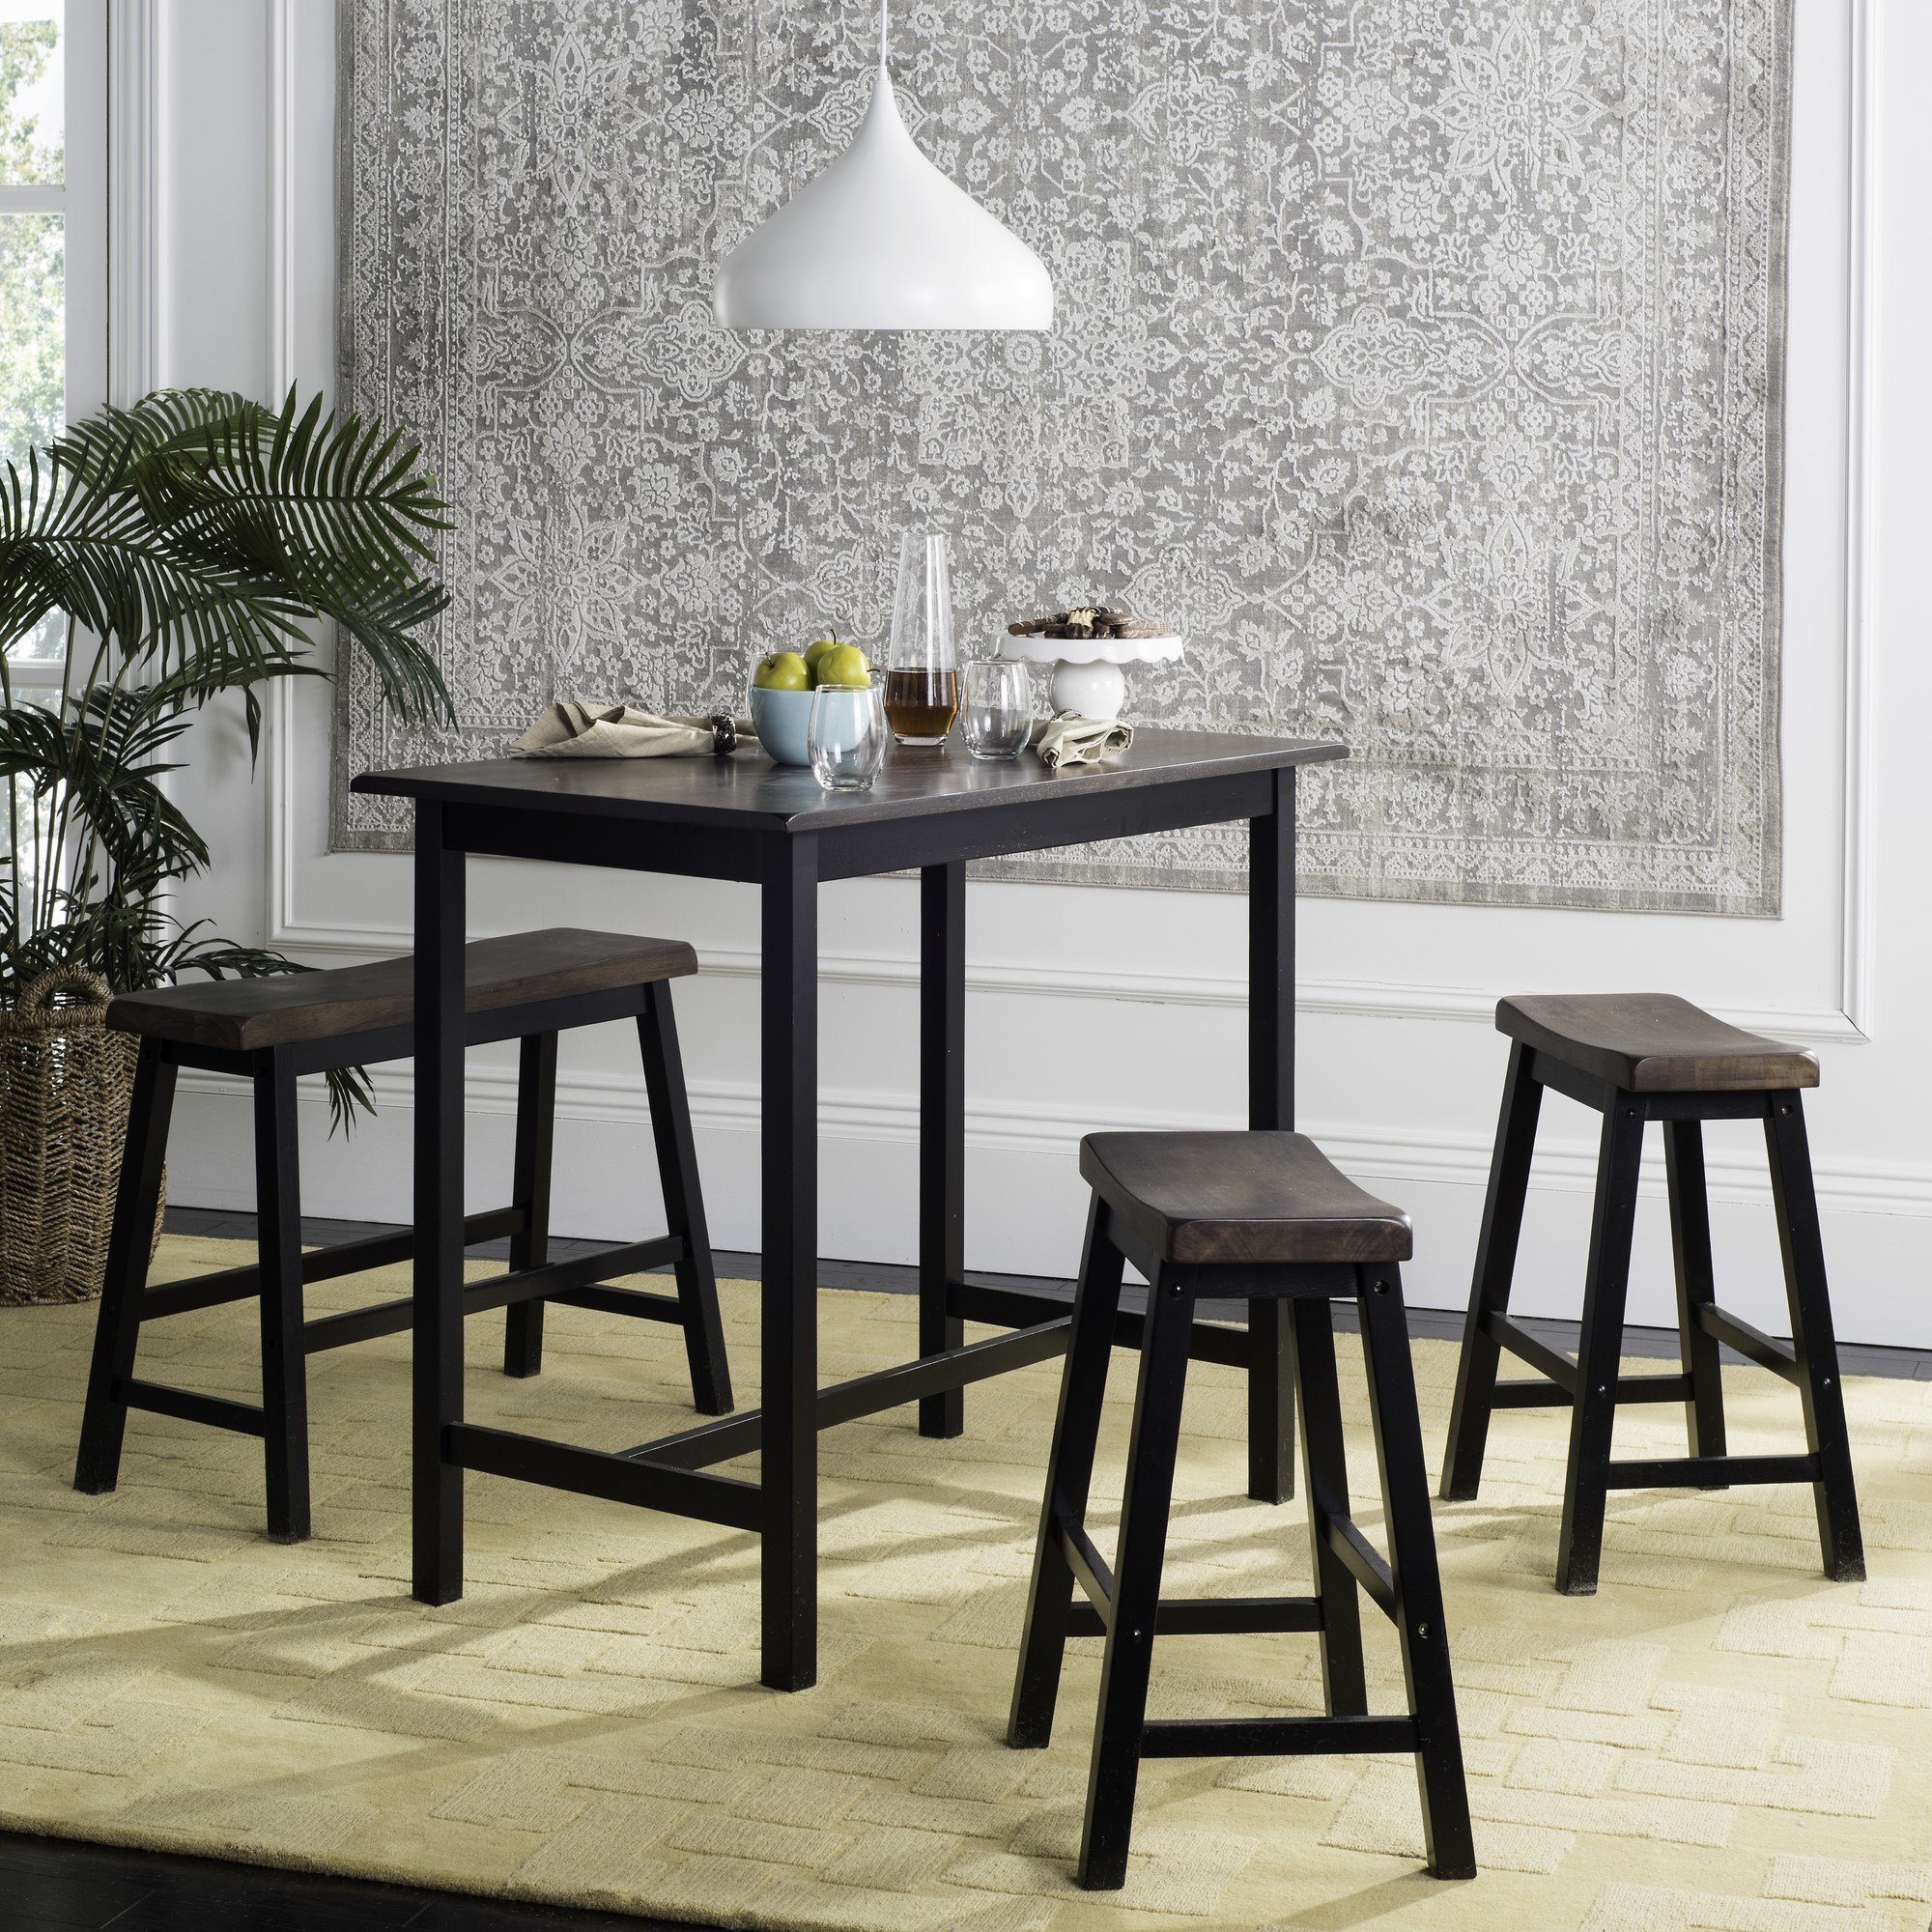 Chelsey 4 Piece Dining Set For Recent Sheetz 3 Piece Counter Height Dining Sets (View 18 of 20)